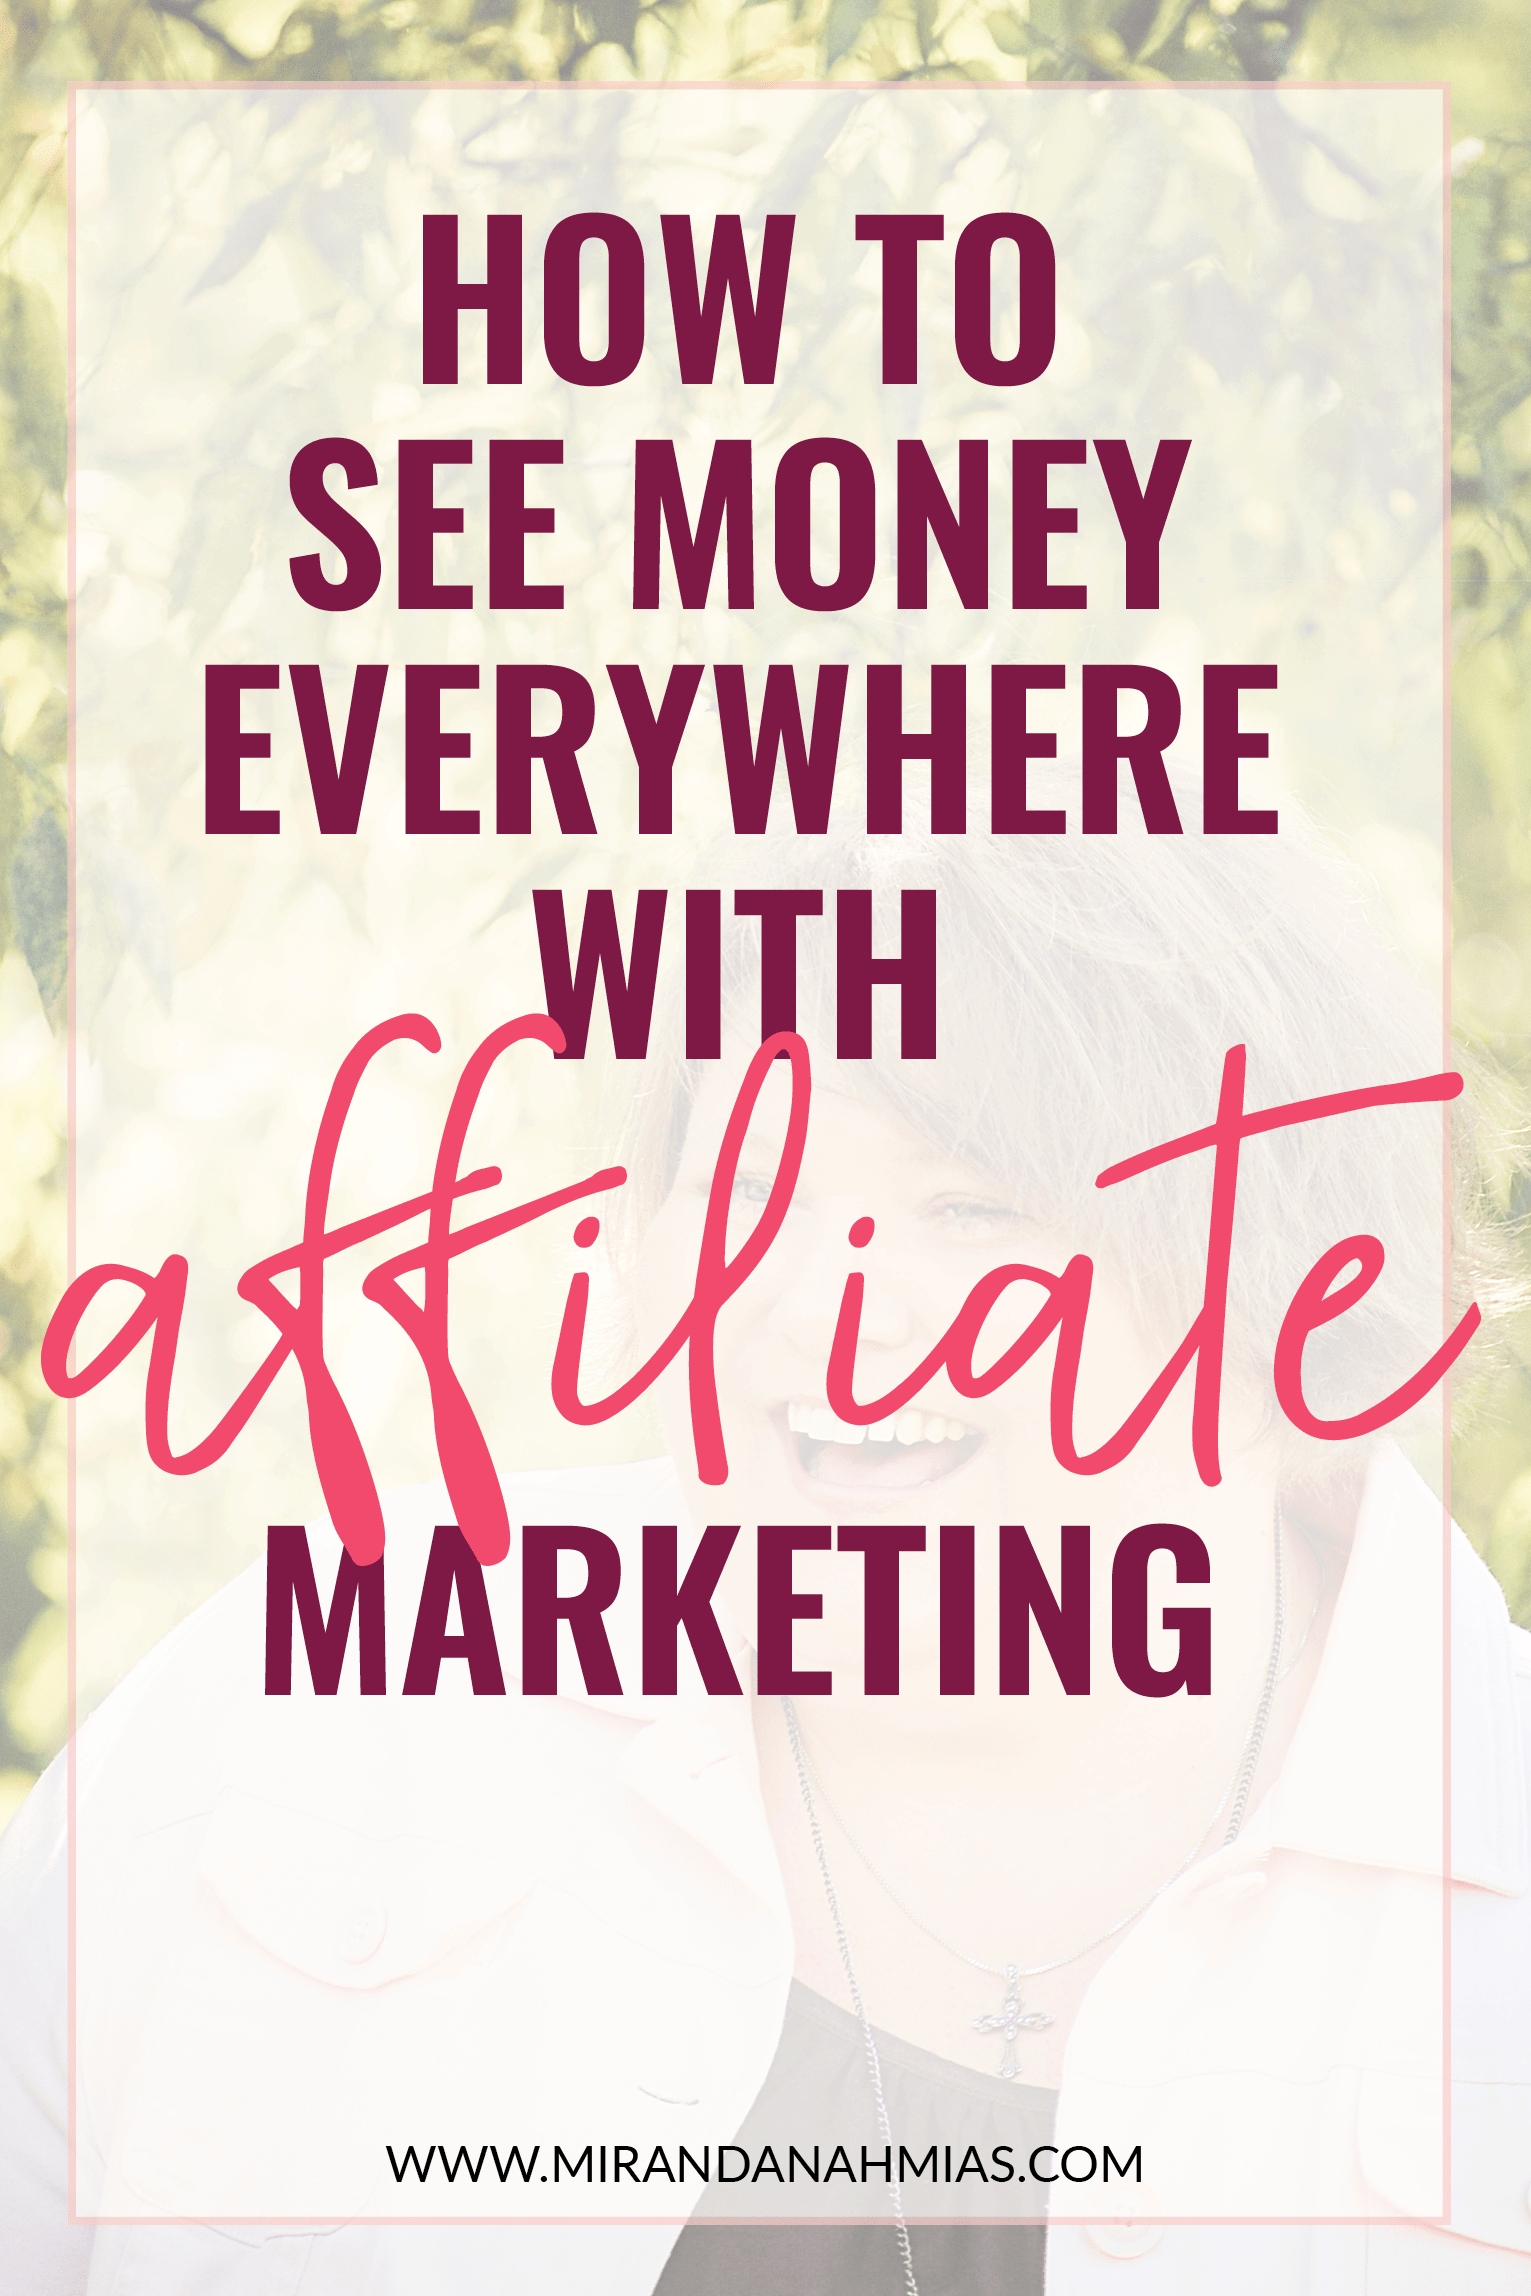 How to See Money Everywhere with Affiliate Marketing | Miranda Nahmias & Co. — Systematic Marketing for Female Service Providers